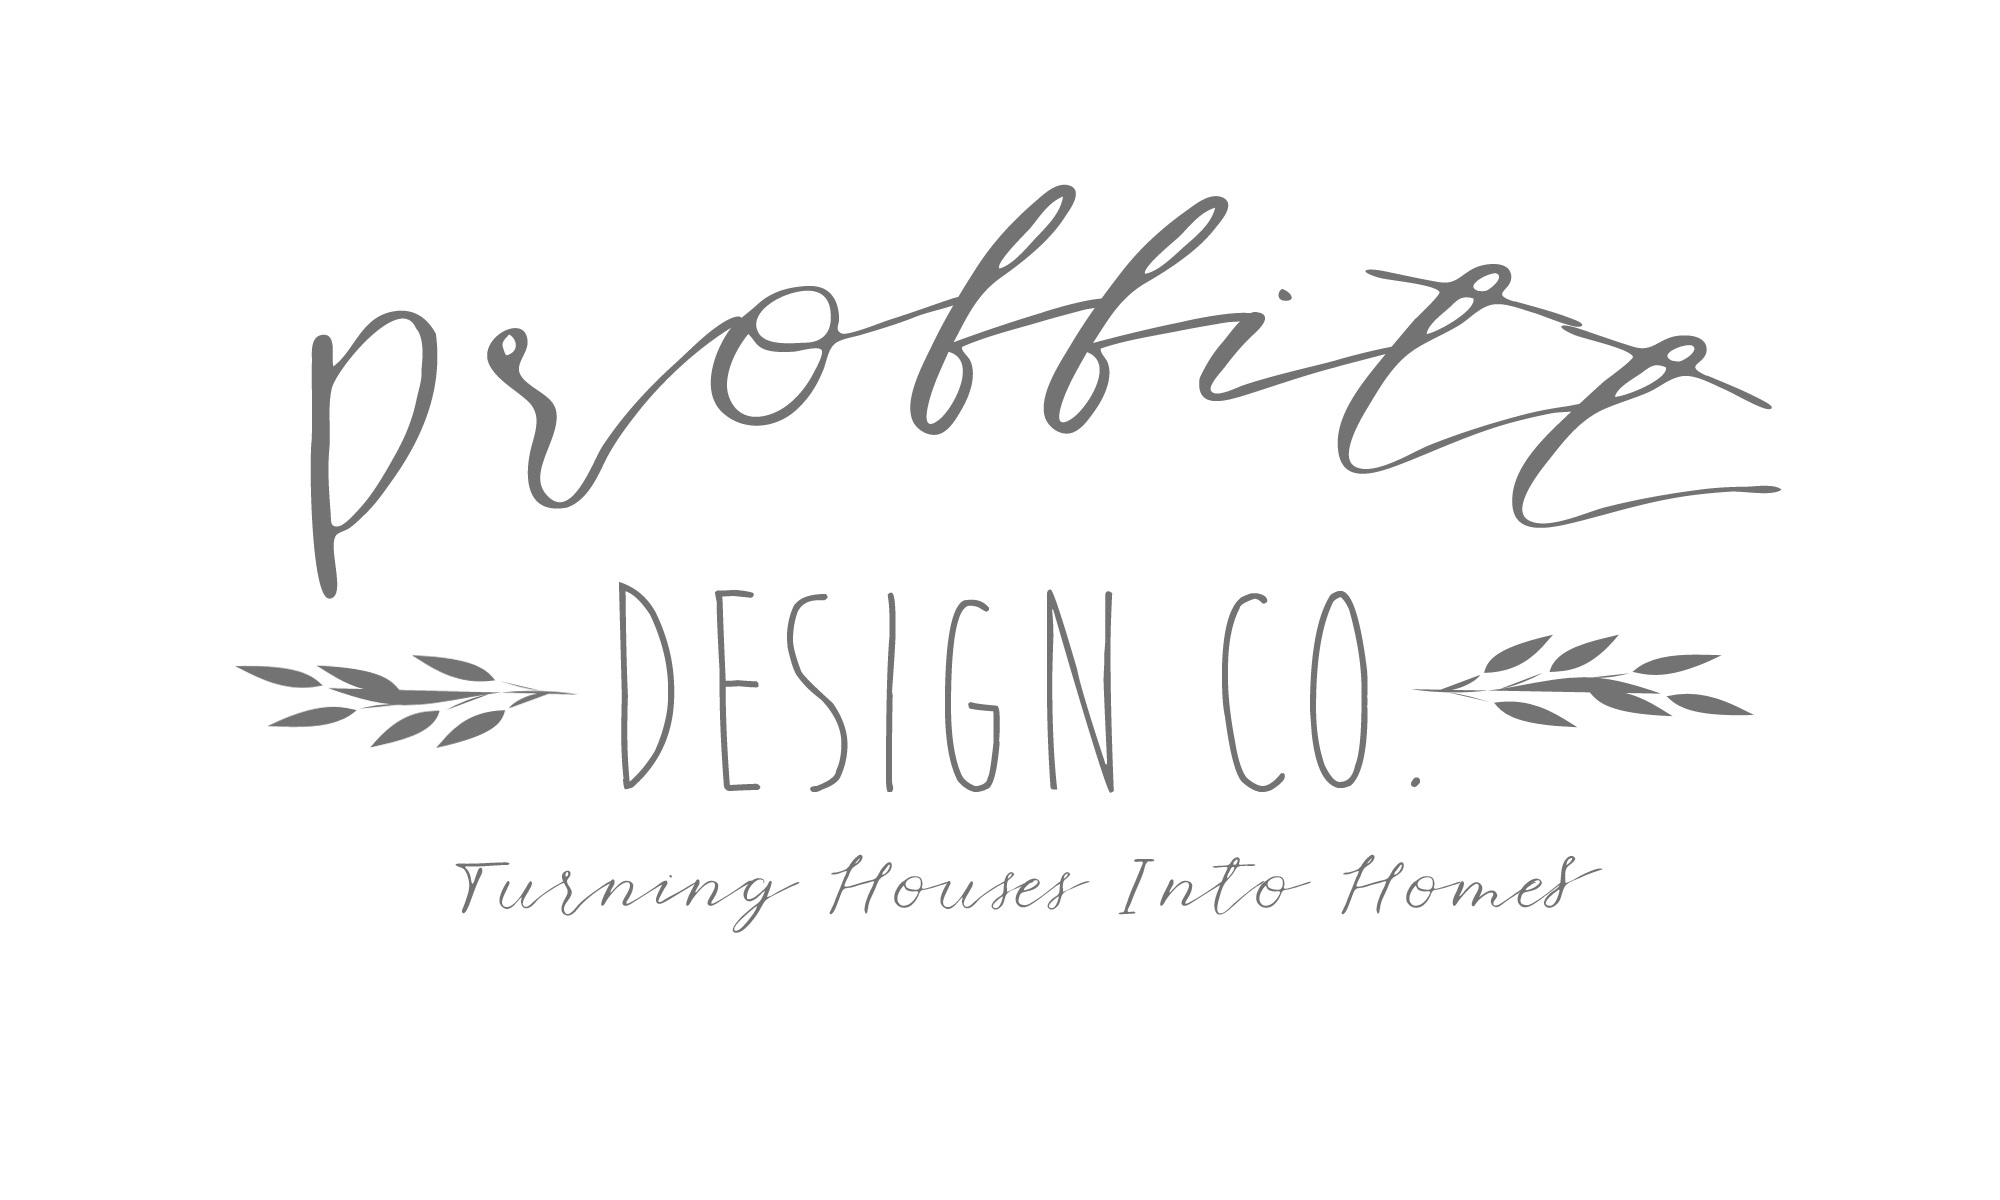 Proffitt Design Co.